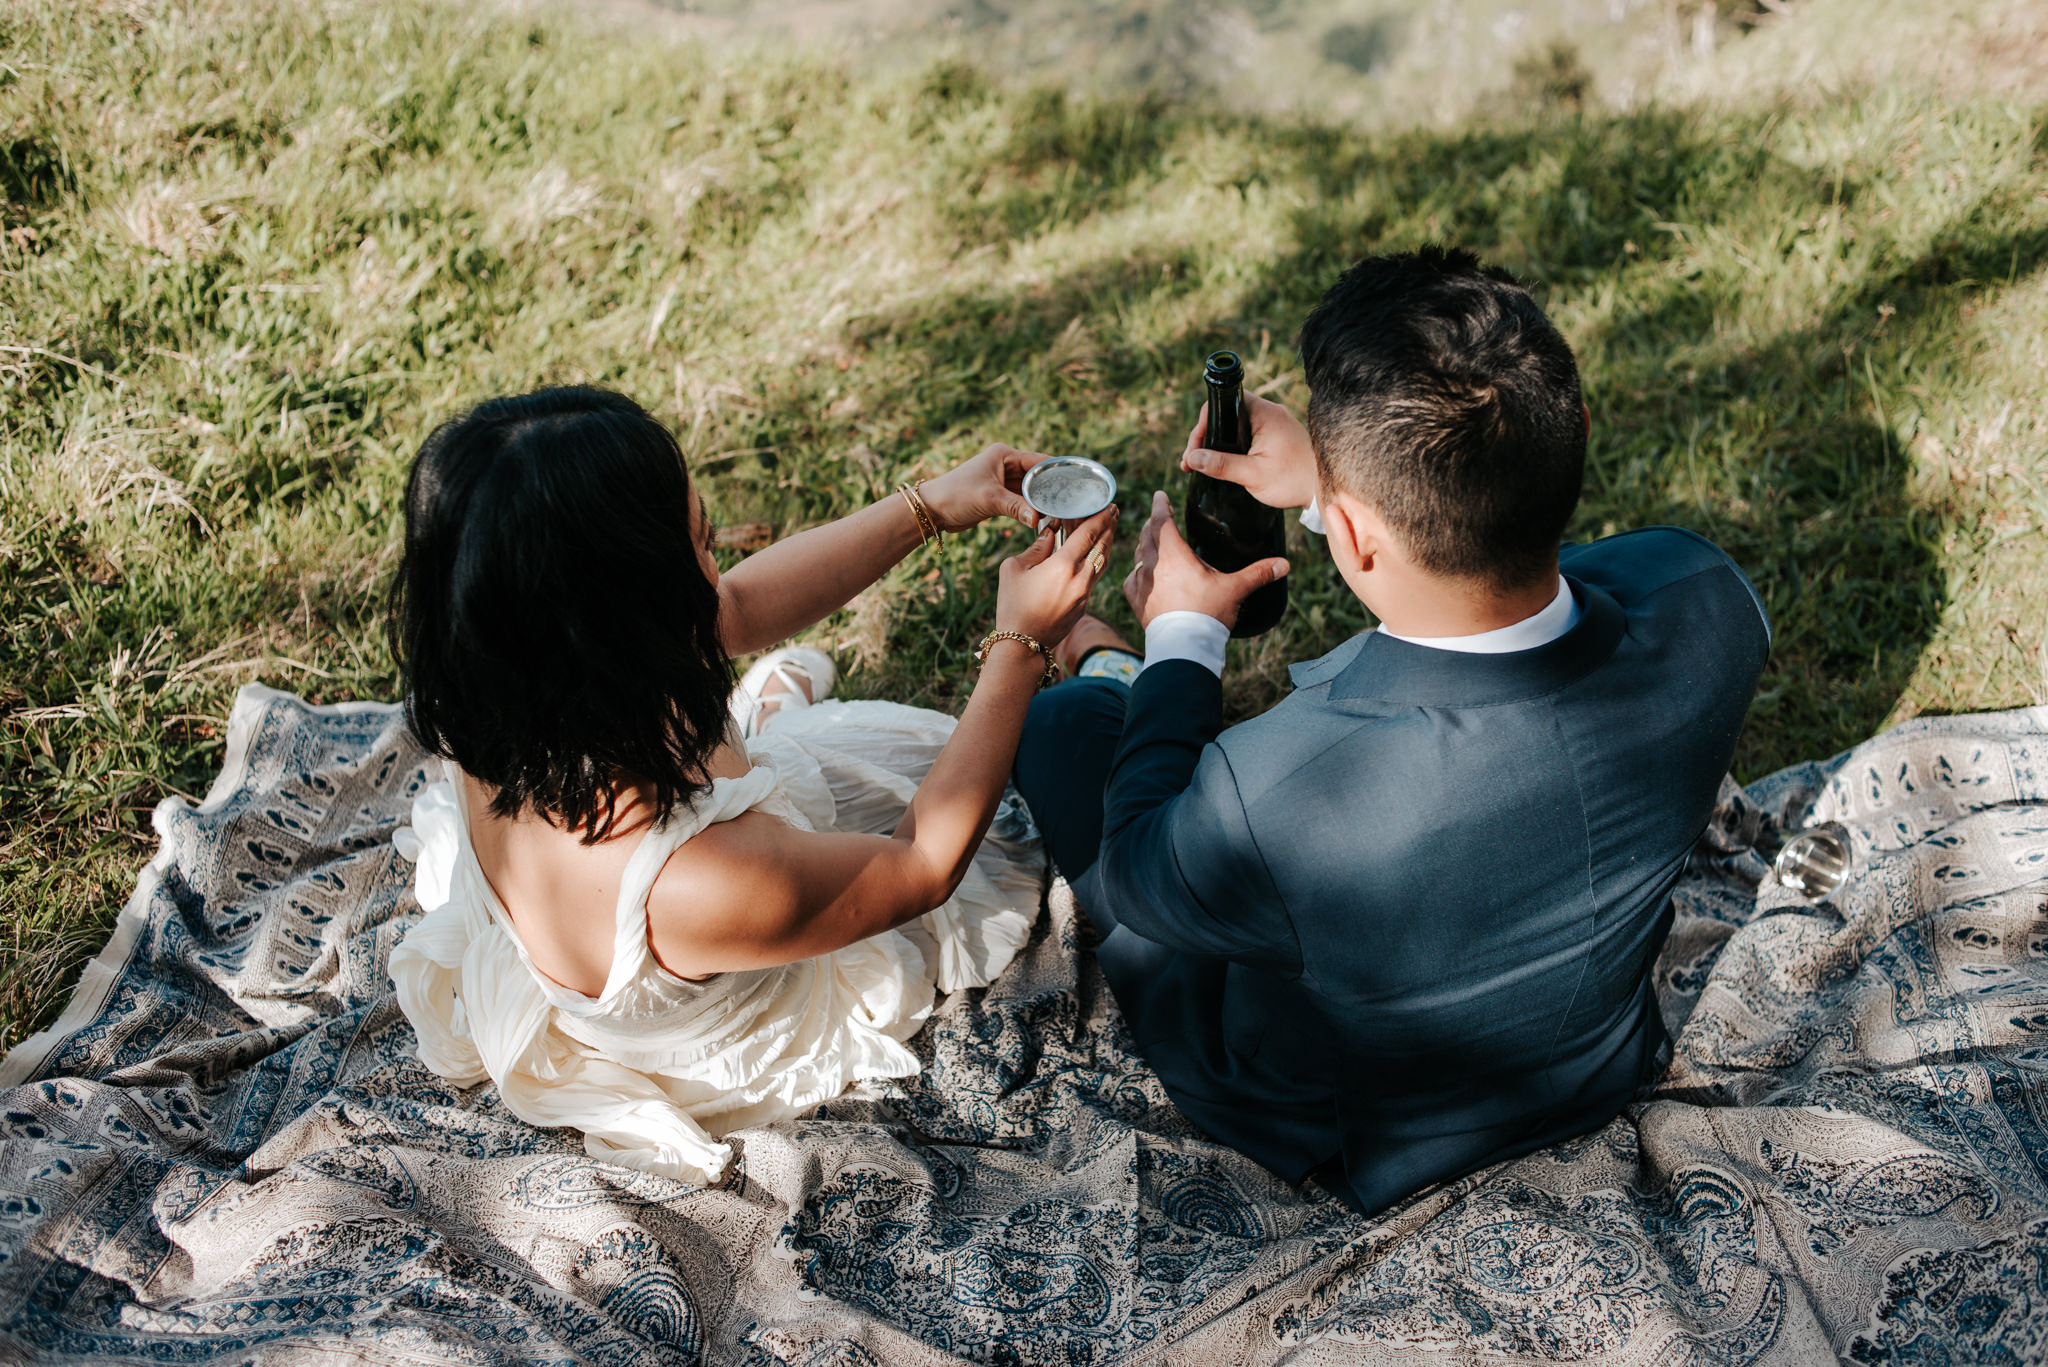 bride and groom toasting champagne on picnic blanket